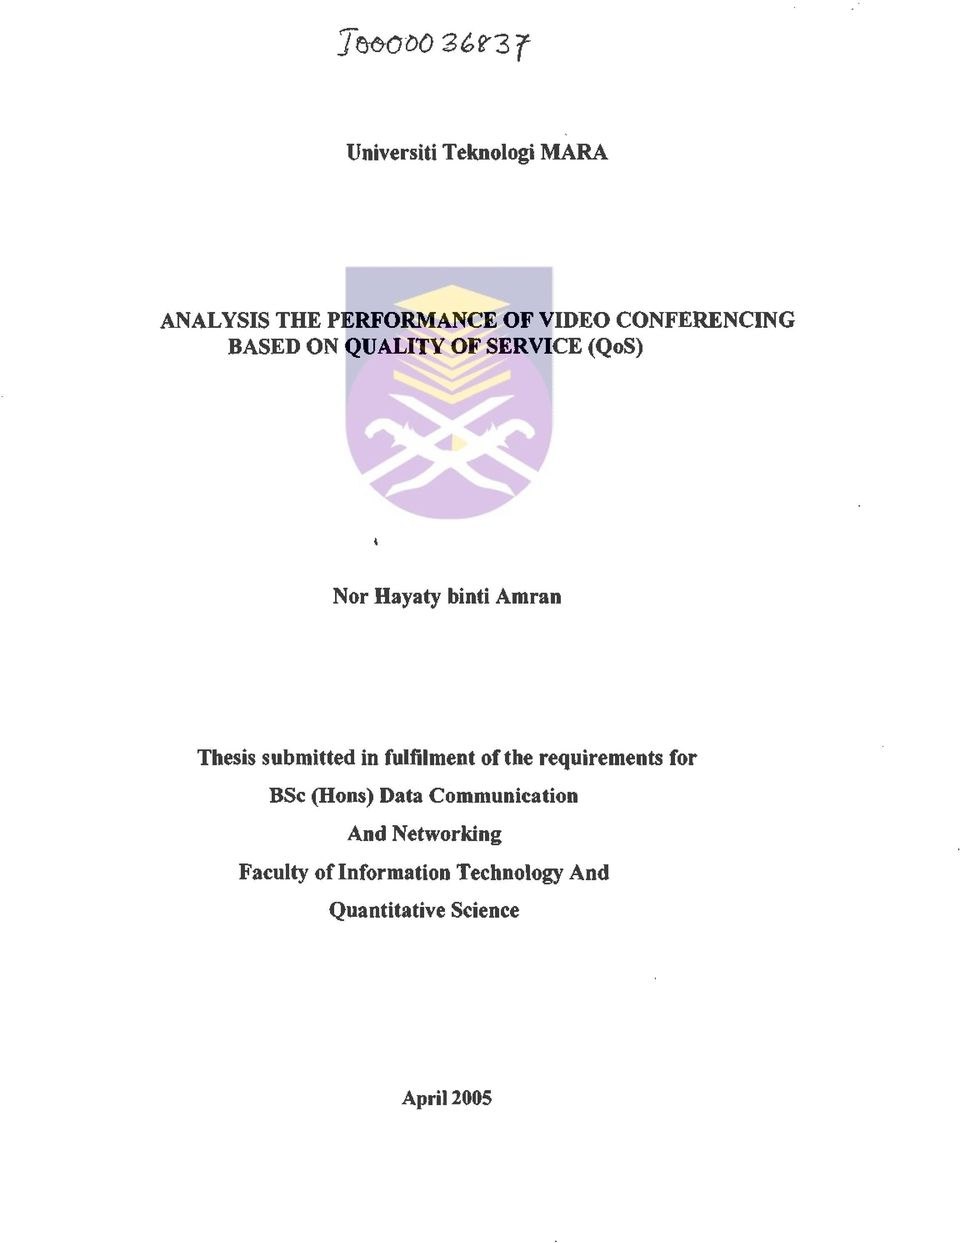 submitted in fulfilment of the requirements for BSc (Rons) Data Communication